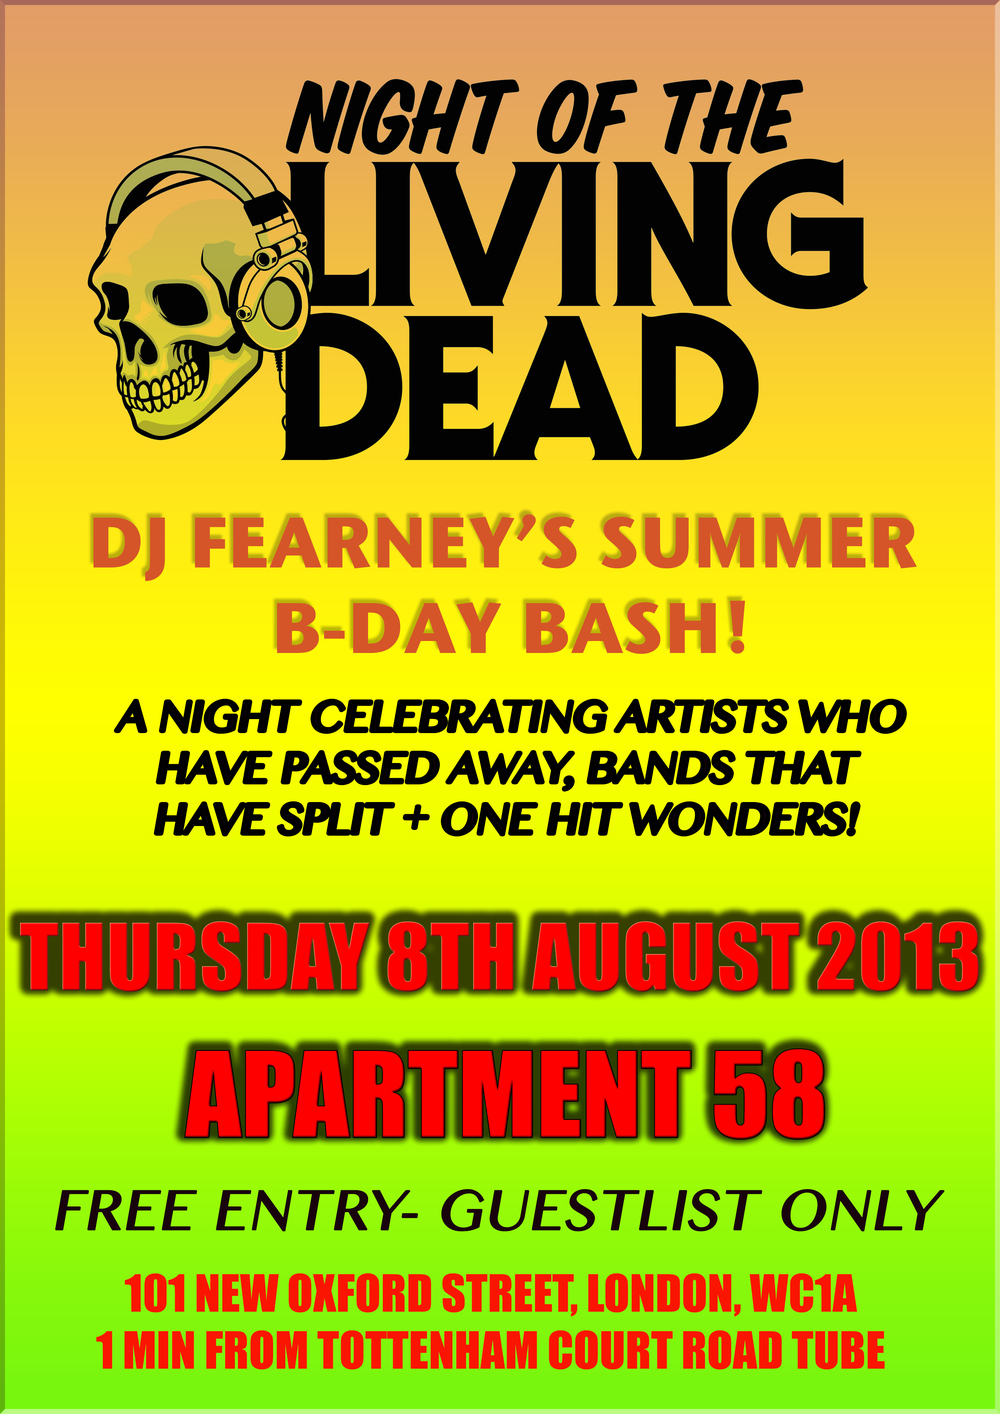 Night of the Living Dead- DJ Fearney's bday bash!